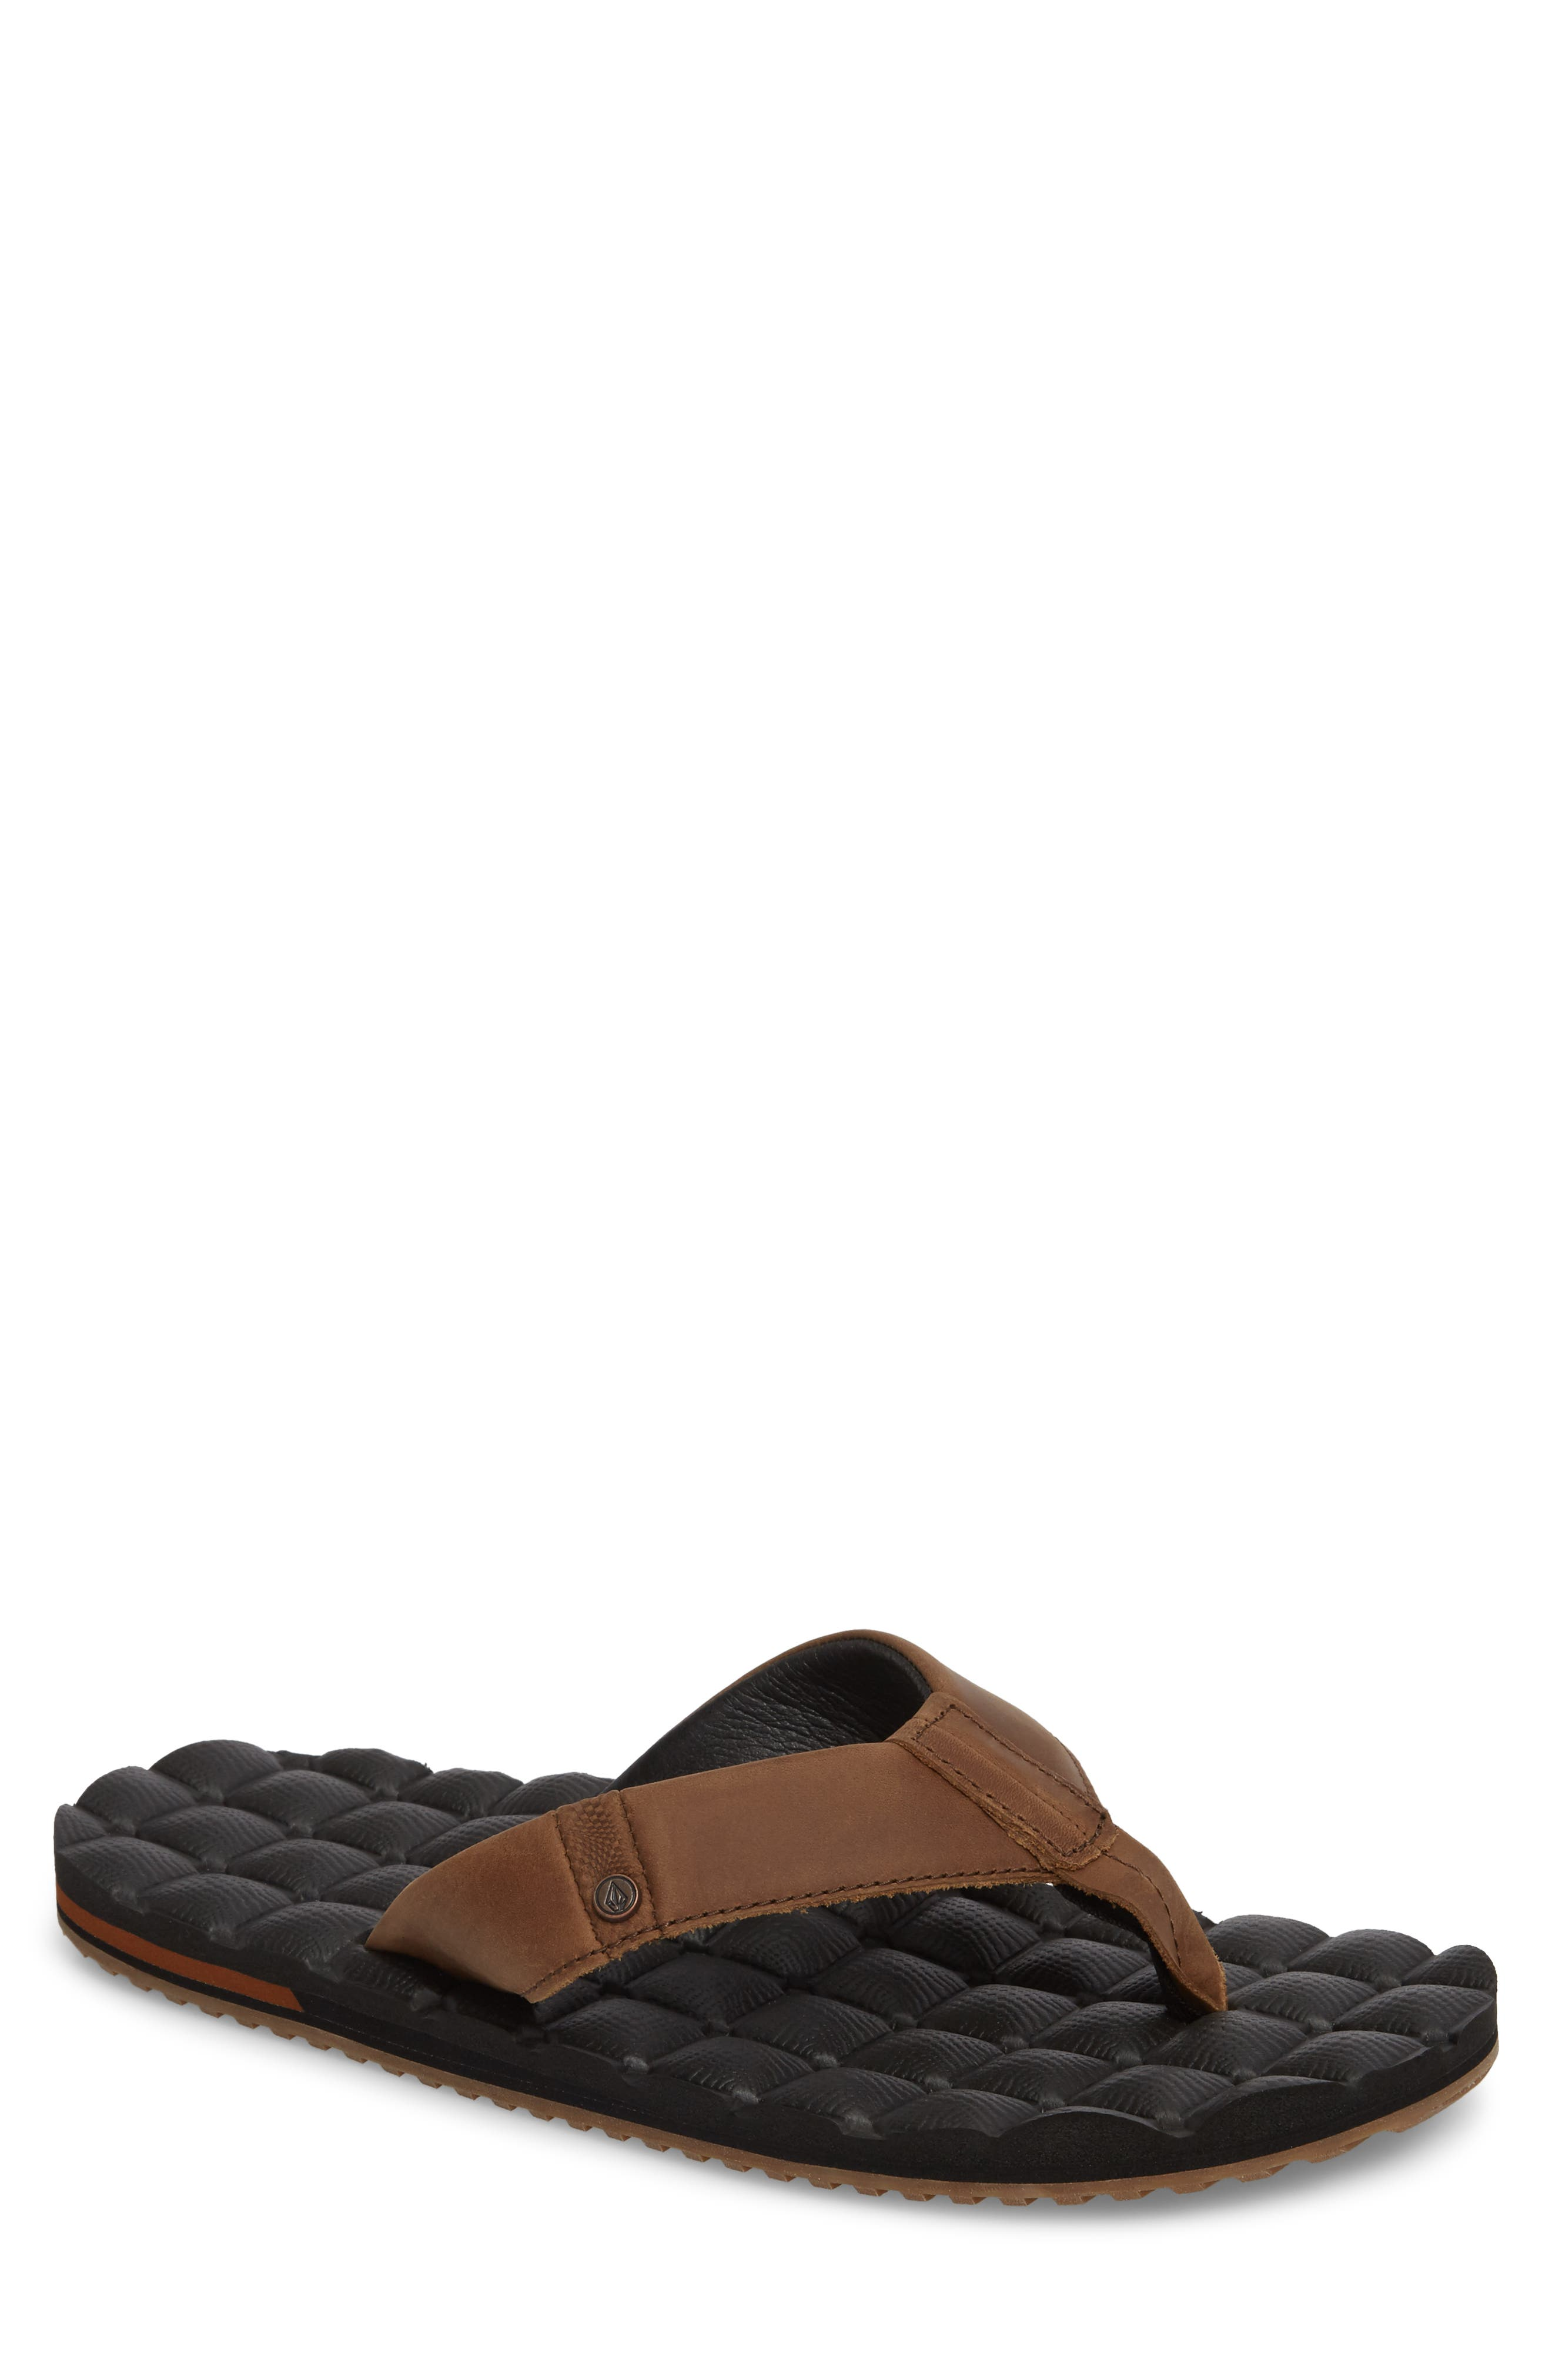 'Recliner' Leather Flip Flop,                             Main thumbnail 1, color,                             Brown Leather